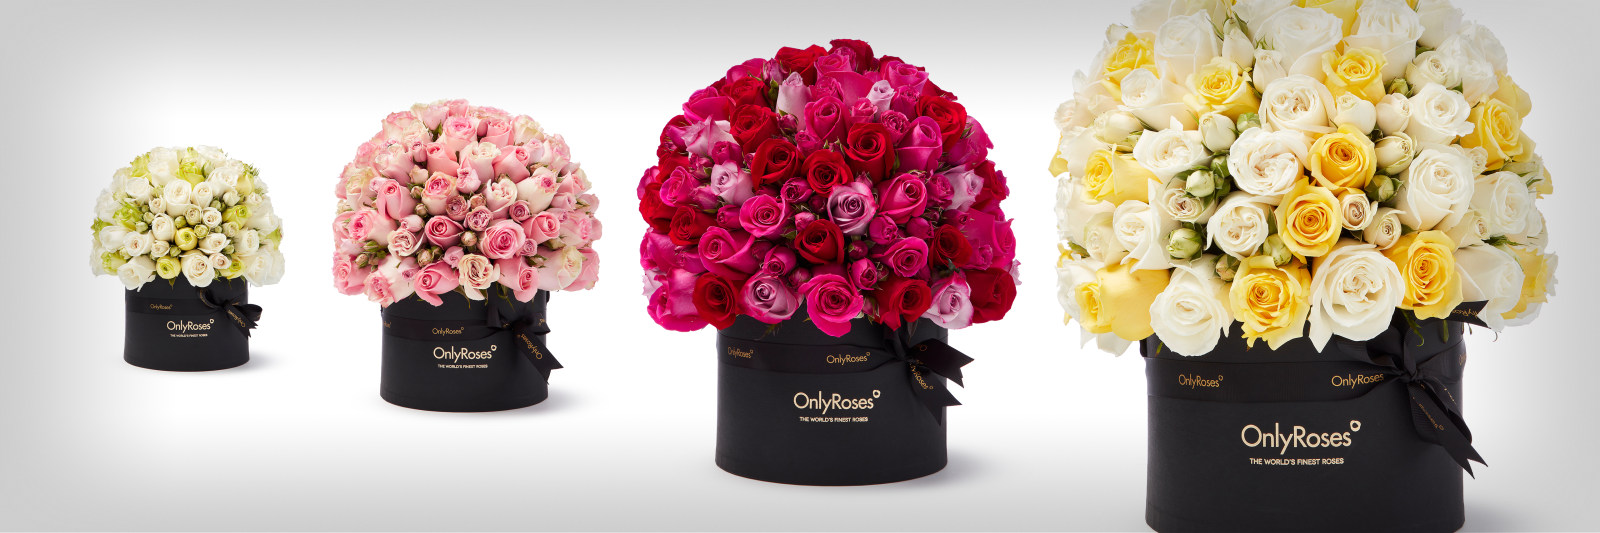 Roses delivered dubai flower delivery service by onlyroses classic rose verano izmirmasajfo